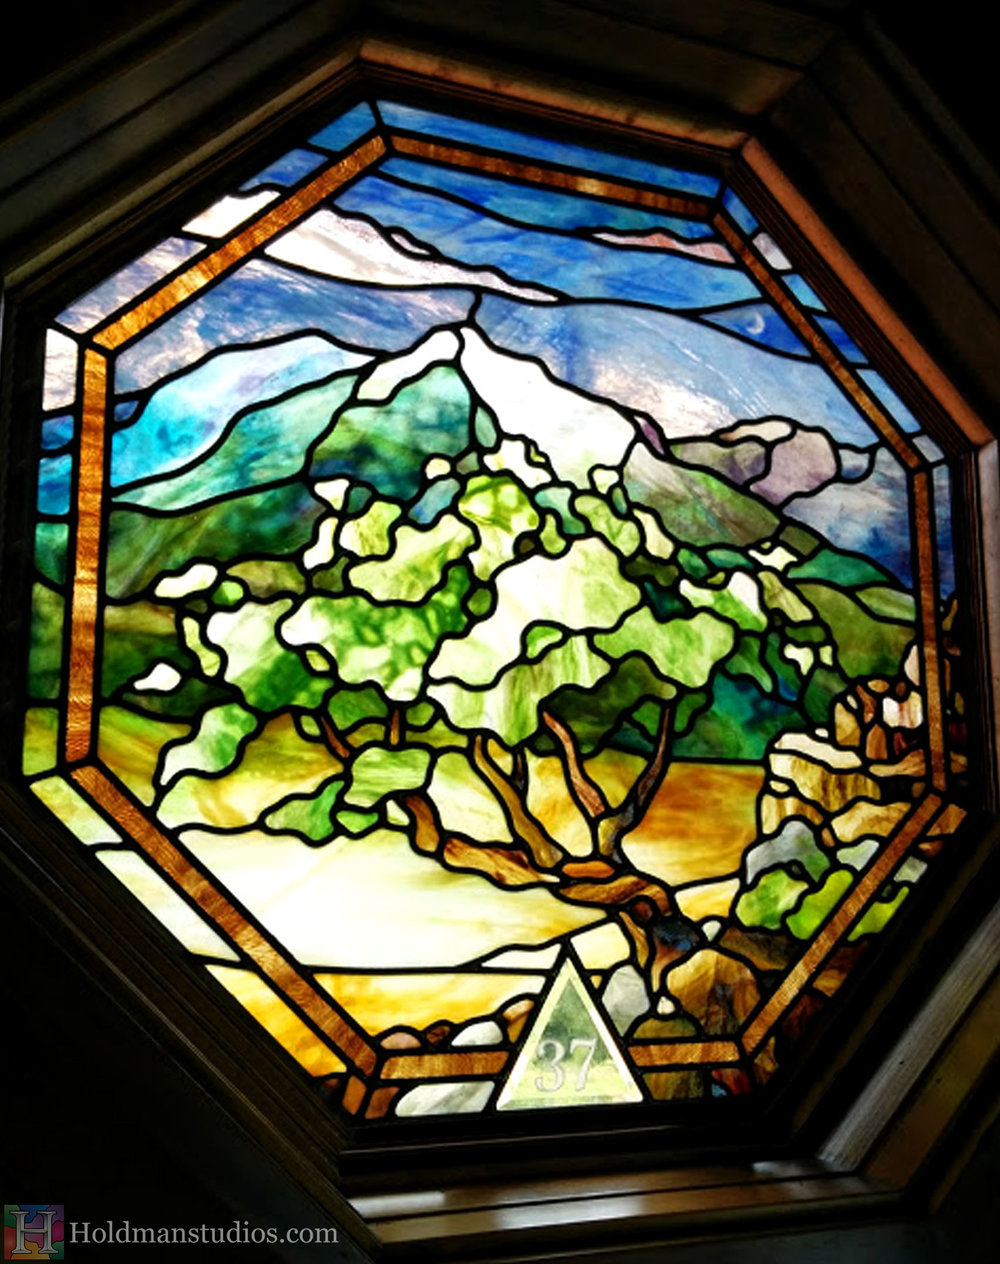 Octagon stained glass window of the sky with clouds, mountains, cliffs, trees, flowers, plants, rocks and leaves. Created by artists under the direction of Tom Holdman at Holdman Studios.